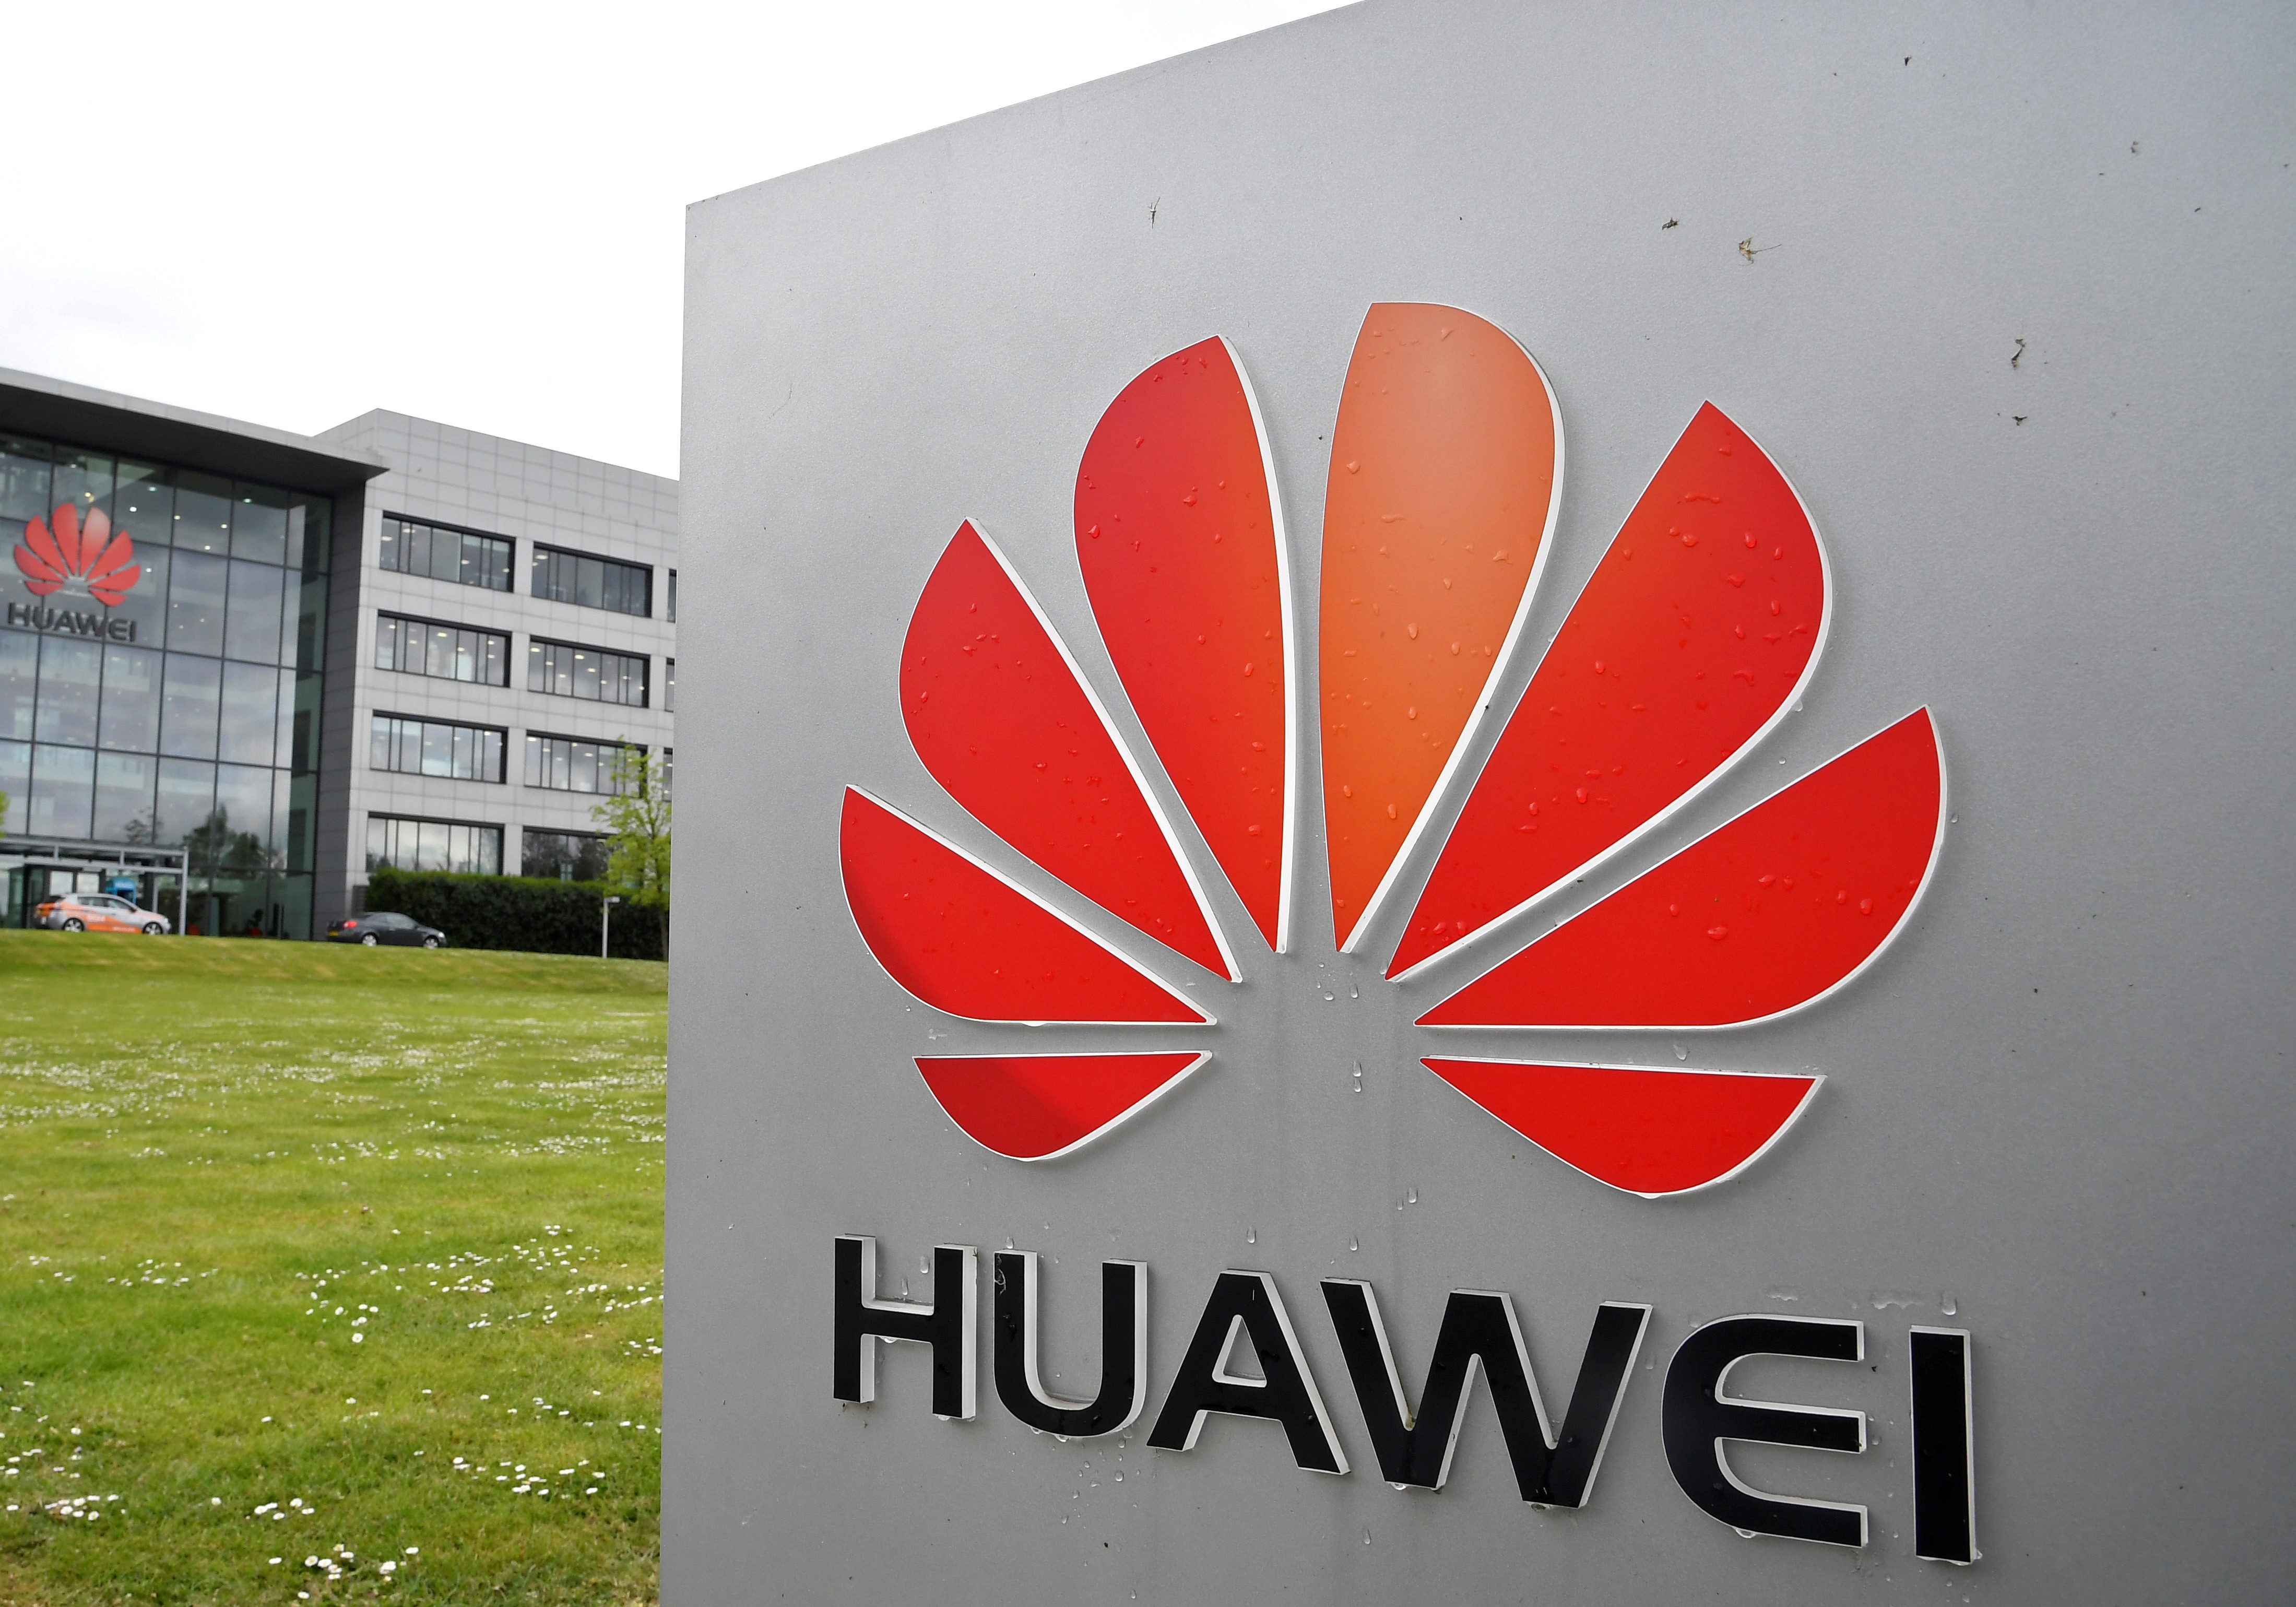 Huawei will commit to 'no-spy agreements' to win government  contracts, chairman says amid US pressure on allies over 5G fears